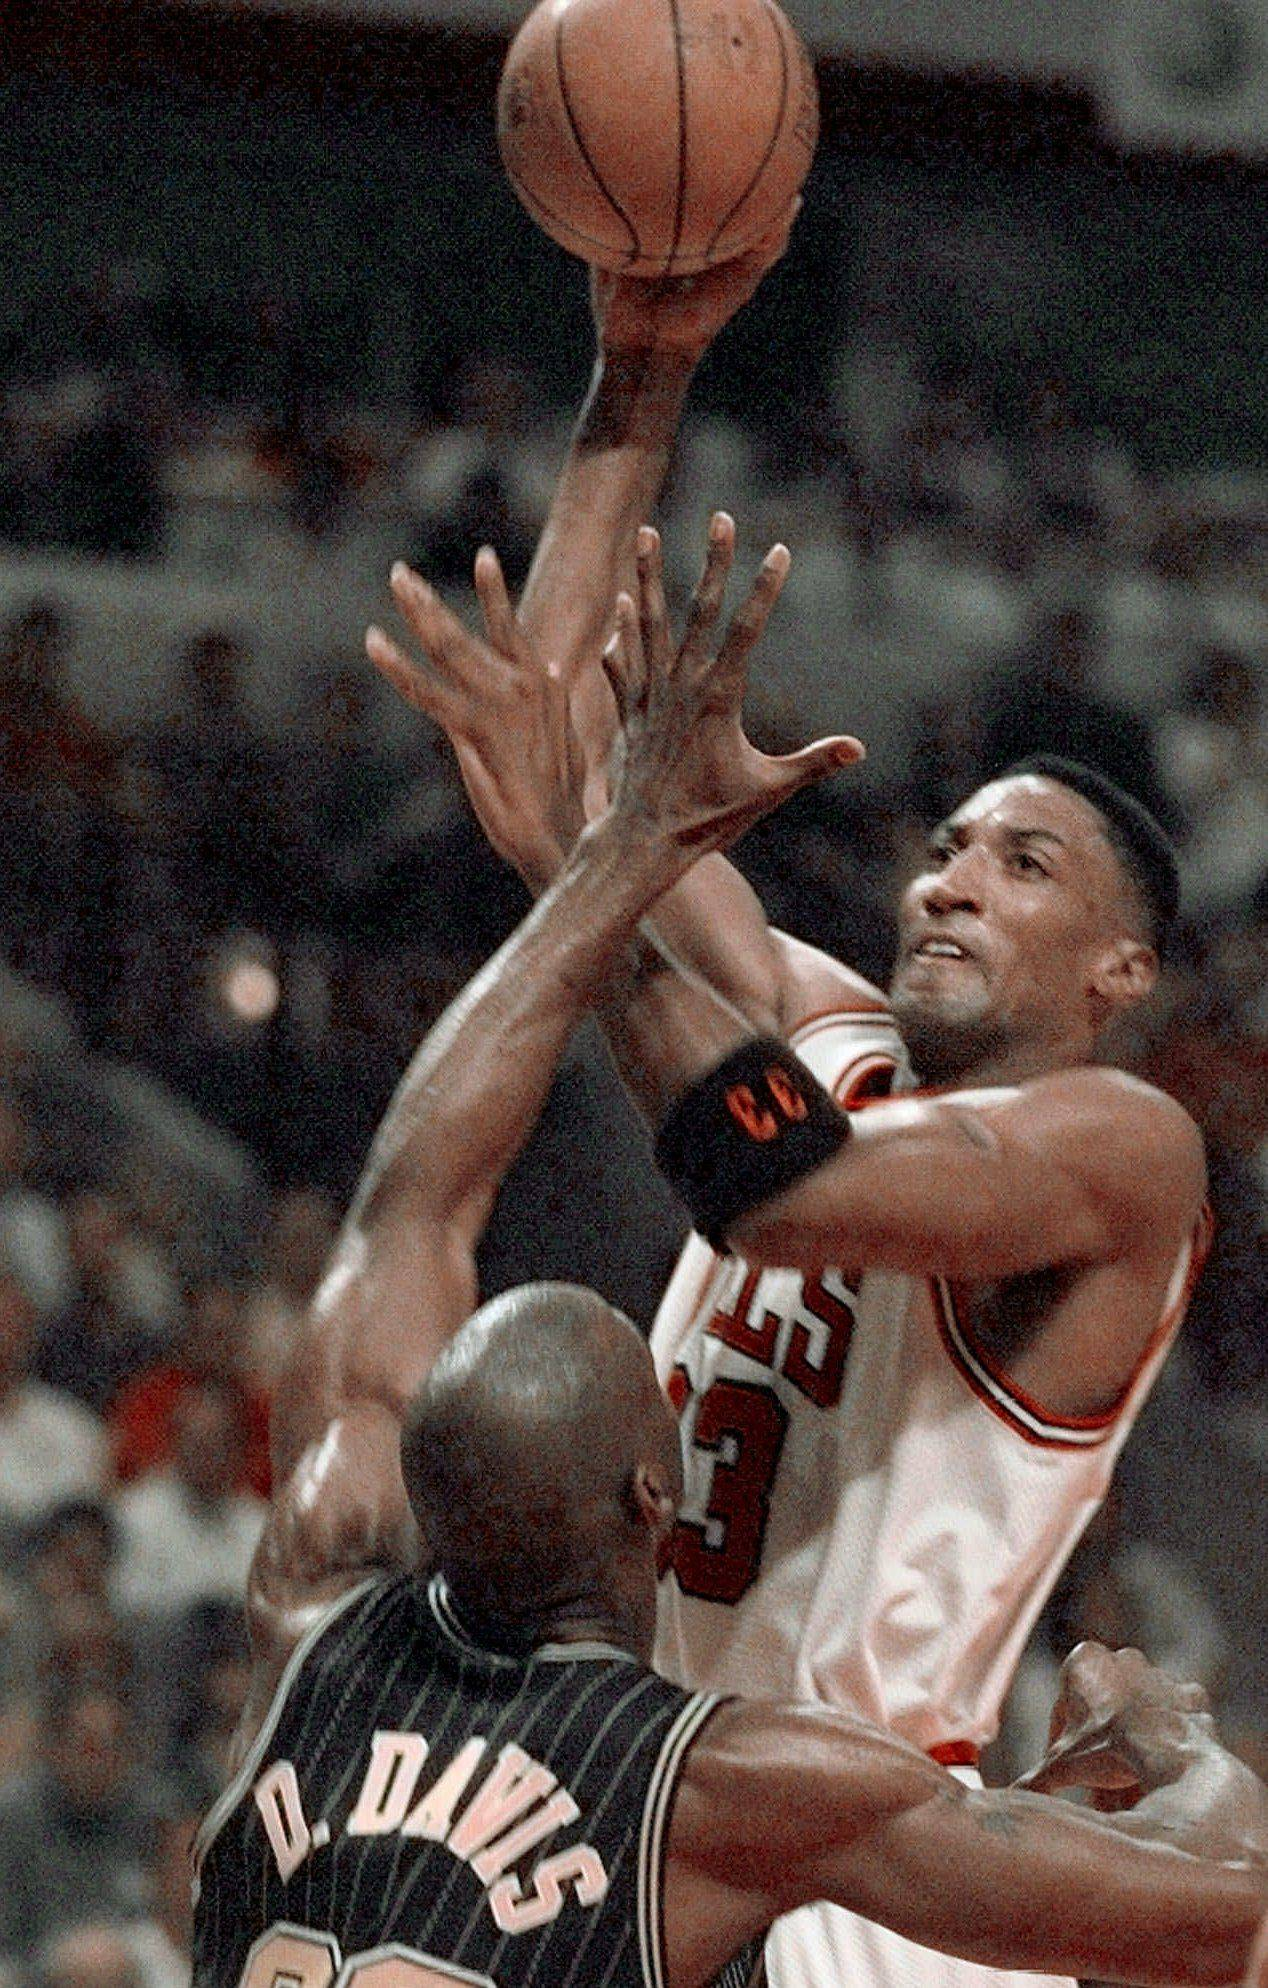 Chicago Bulls' Scottie Pippen (33) shoots over Indiana Pacers' Dale Davis (32) during the second quarter of Game 2 in the Eastern Conference Finals Tuesday, May 19, 1998, in Chicago.